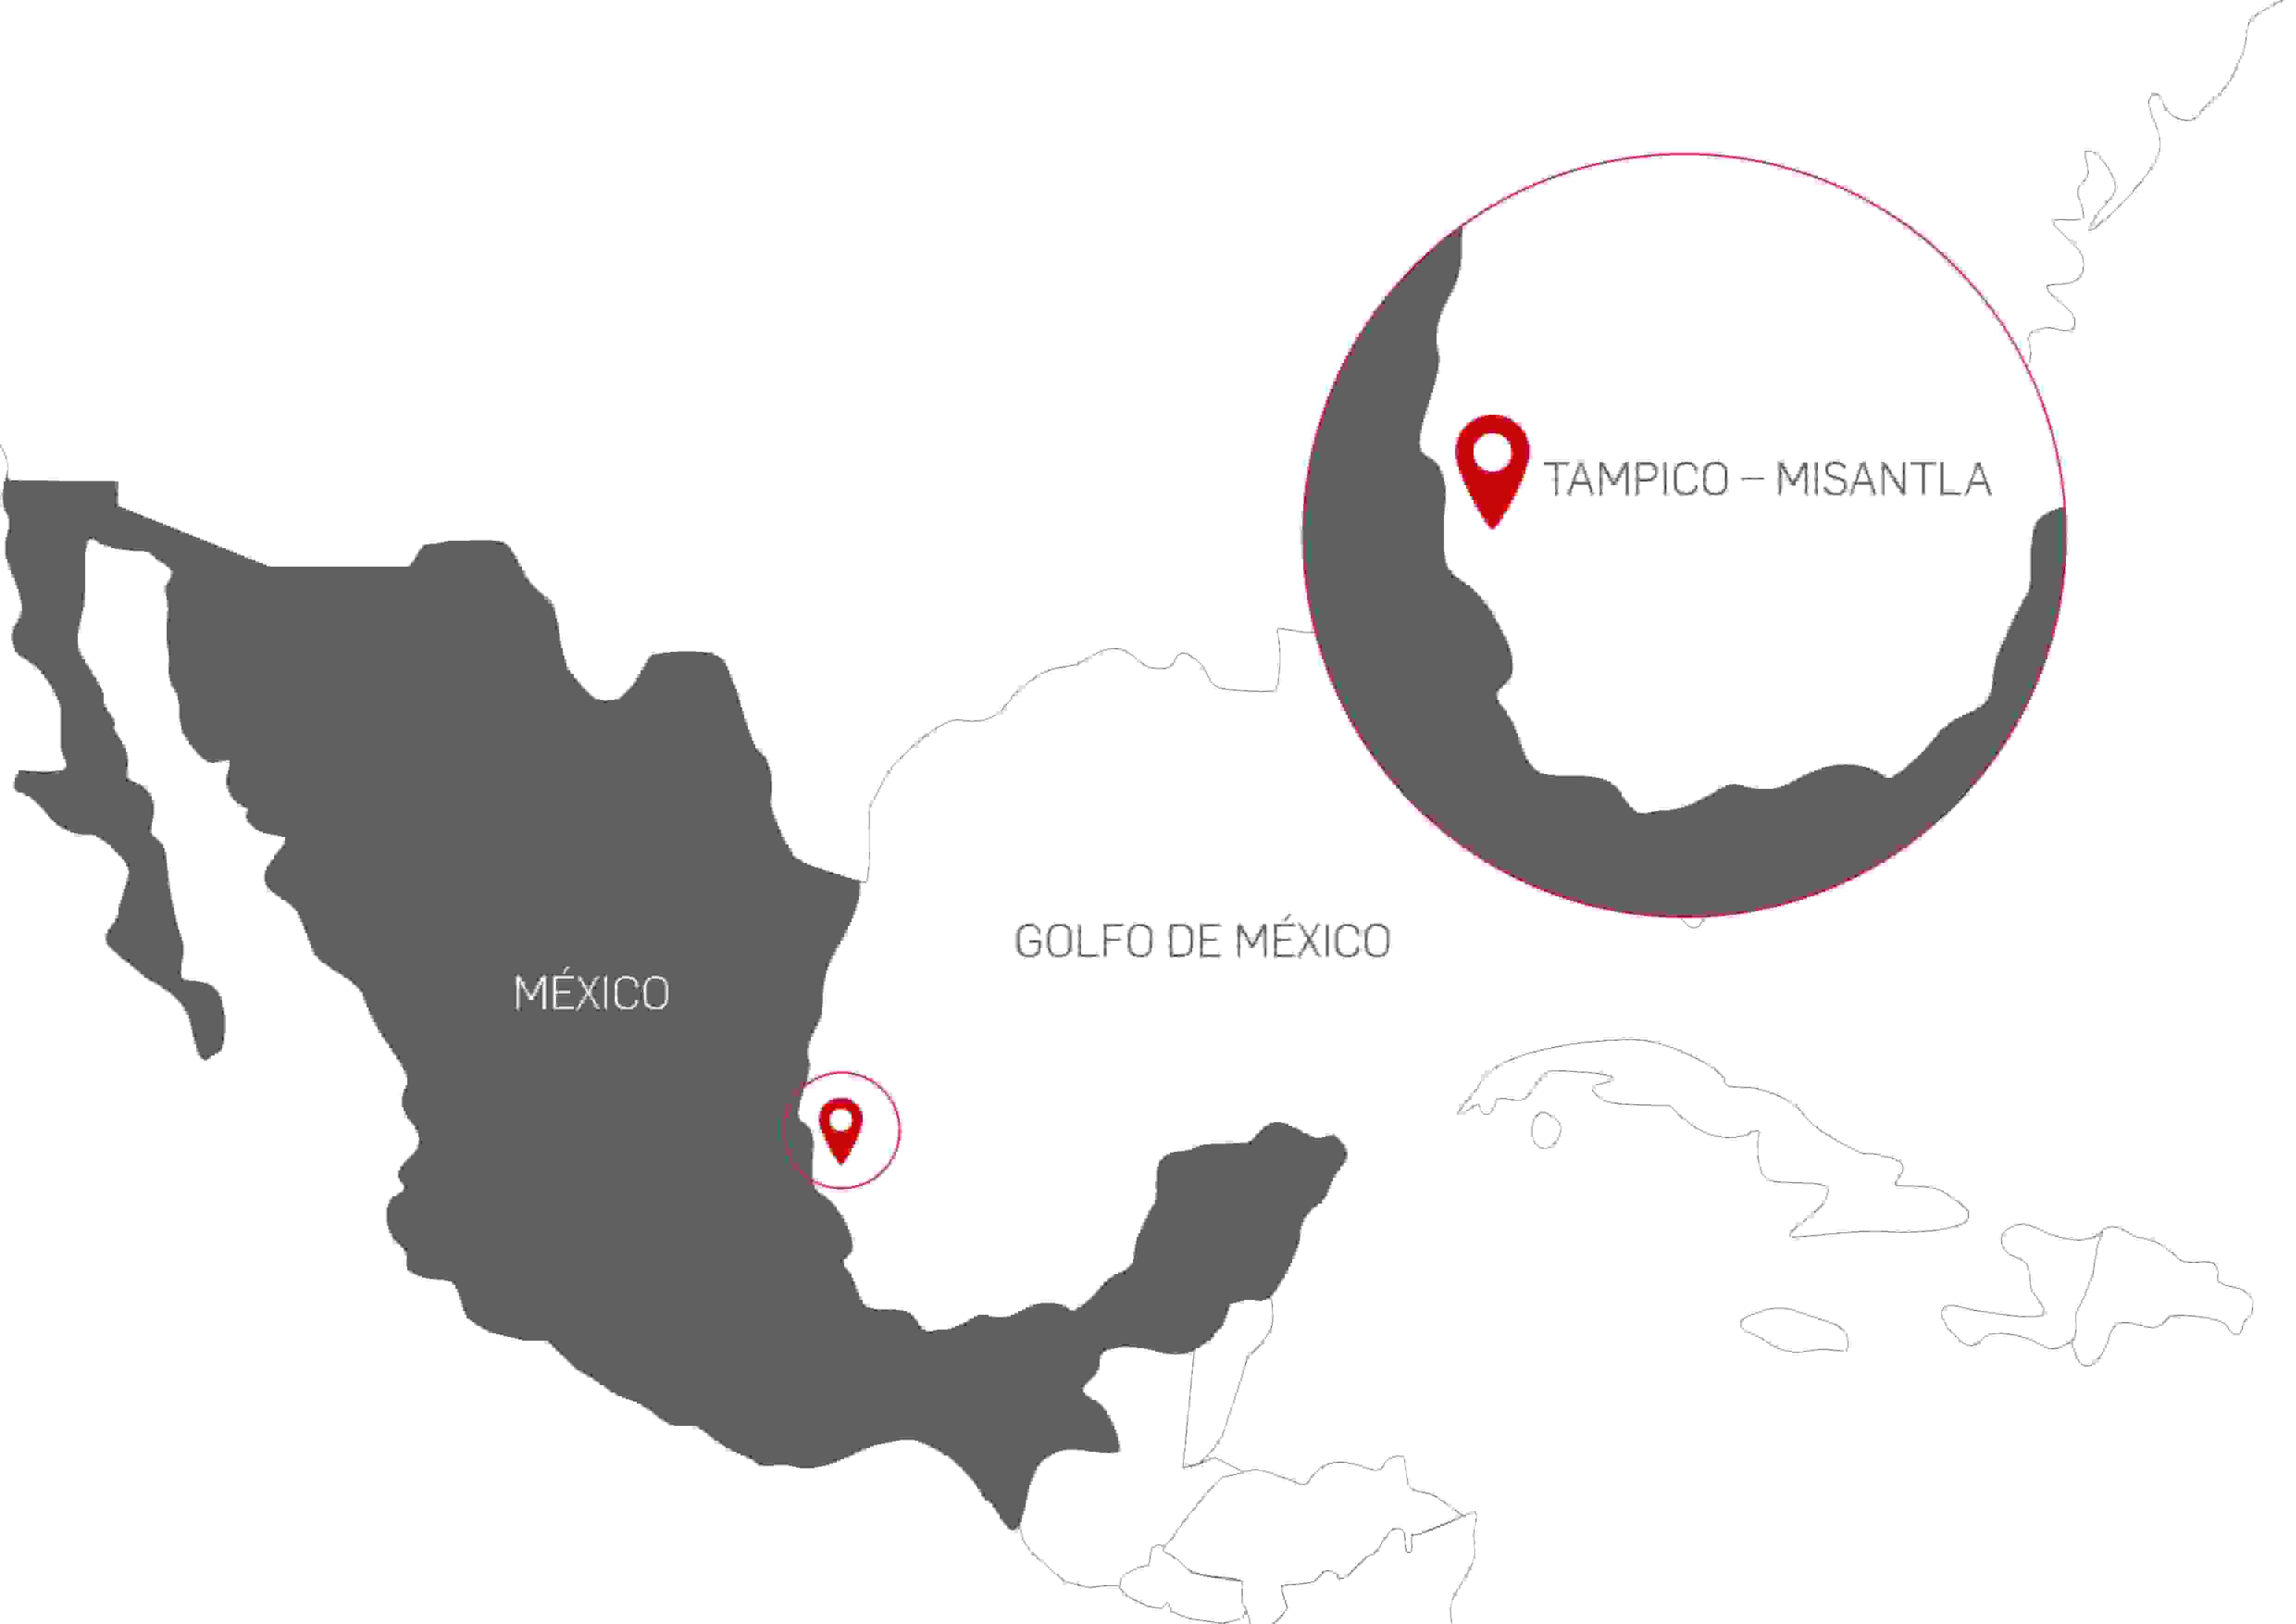 Location of hydrocarbon blocks in Mexico